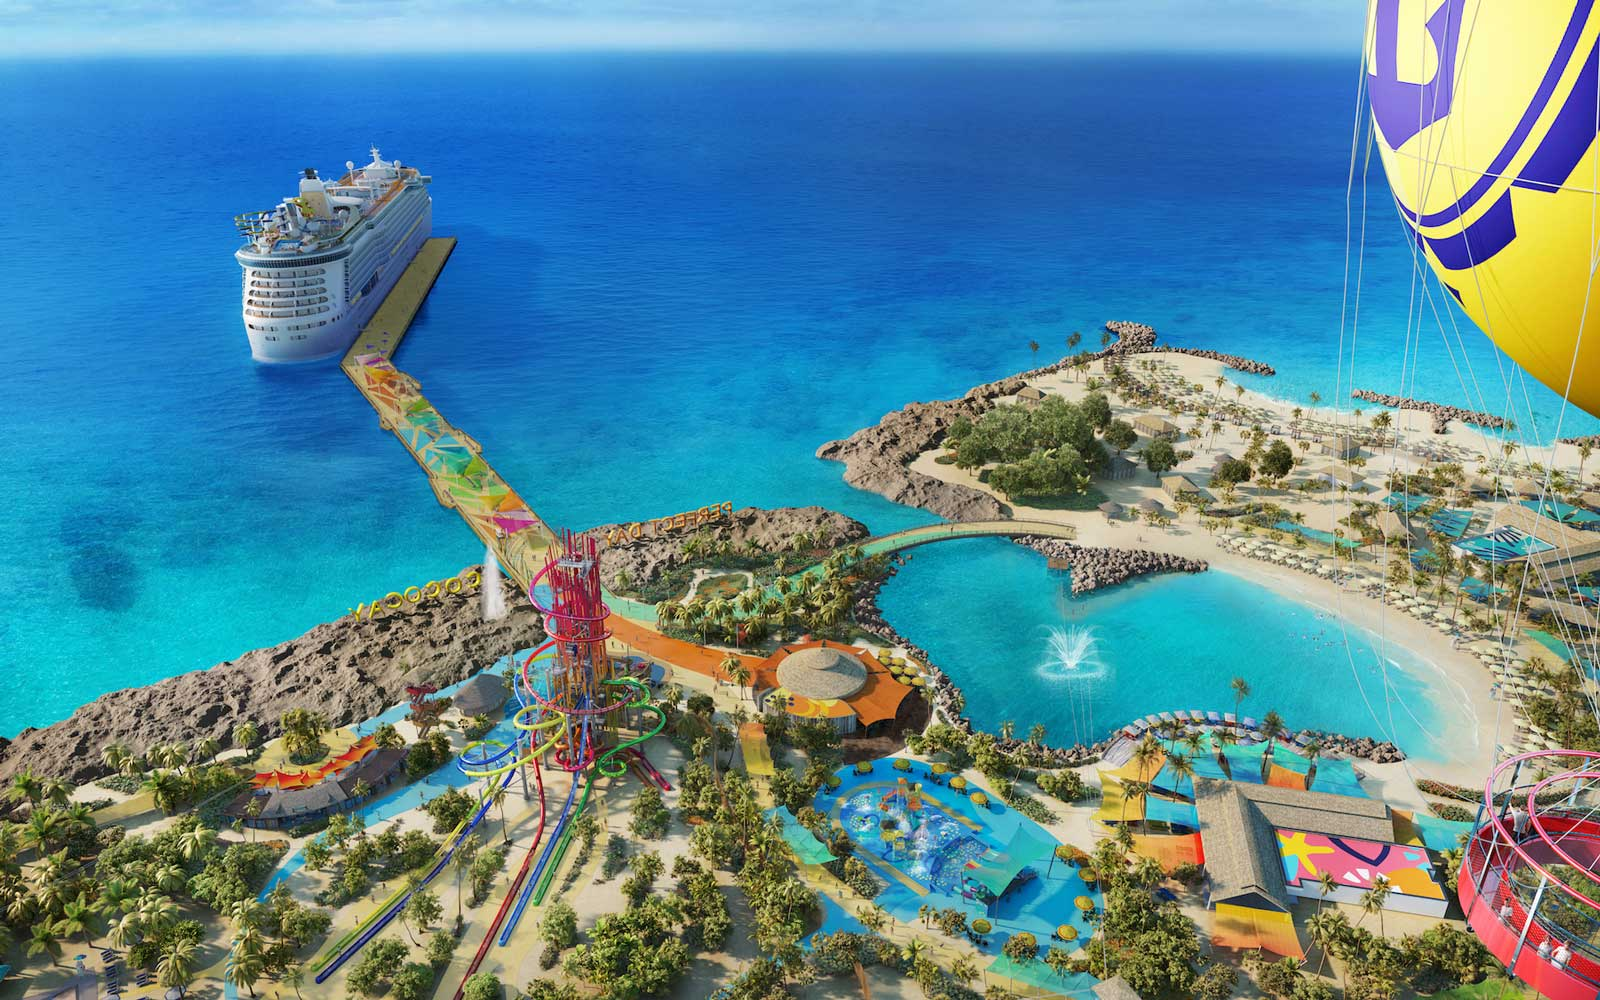 Royal Caribbean S New Private Island Cruise Will Have